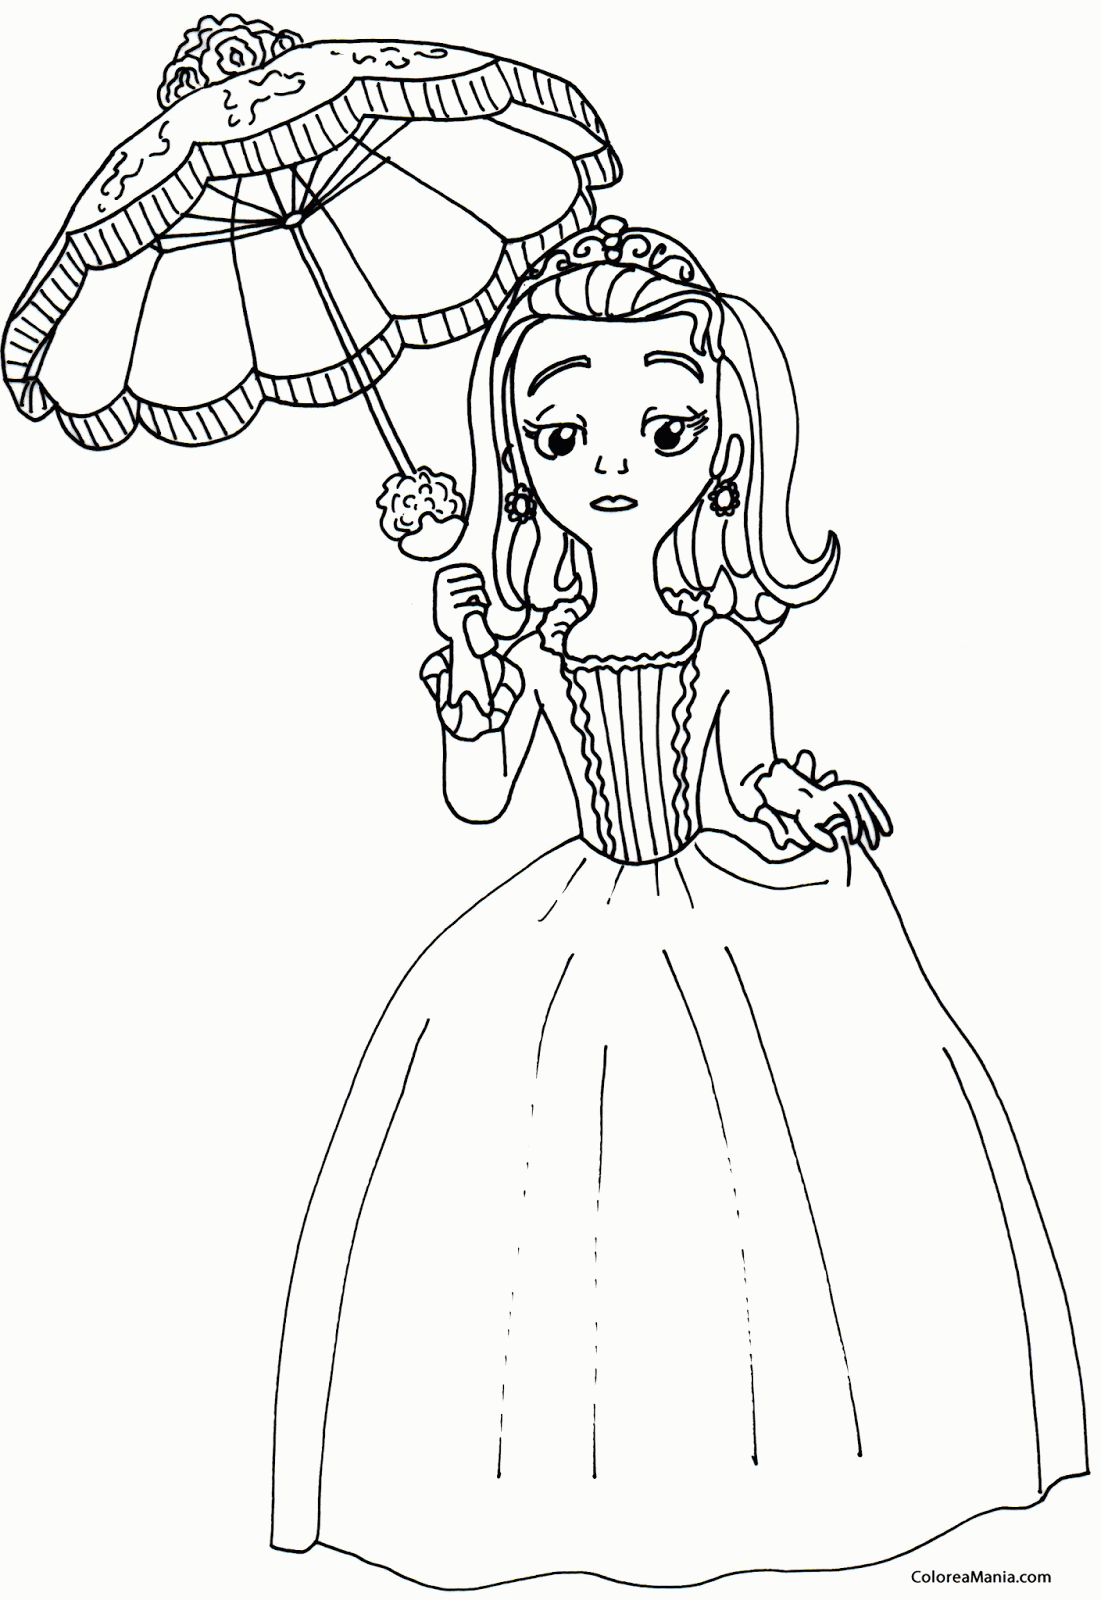 Elena Princess Coloring Pages Of Avalor Sketch Coloring Page